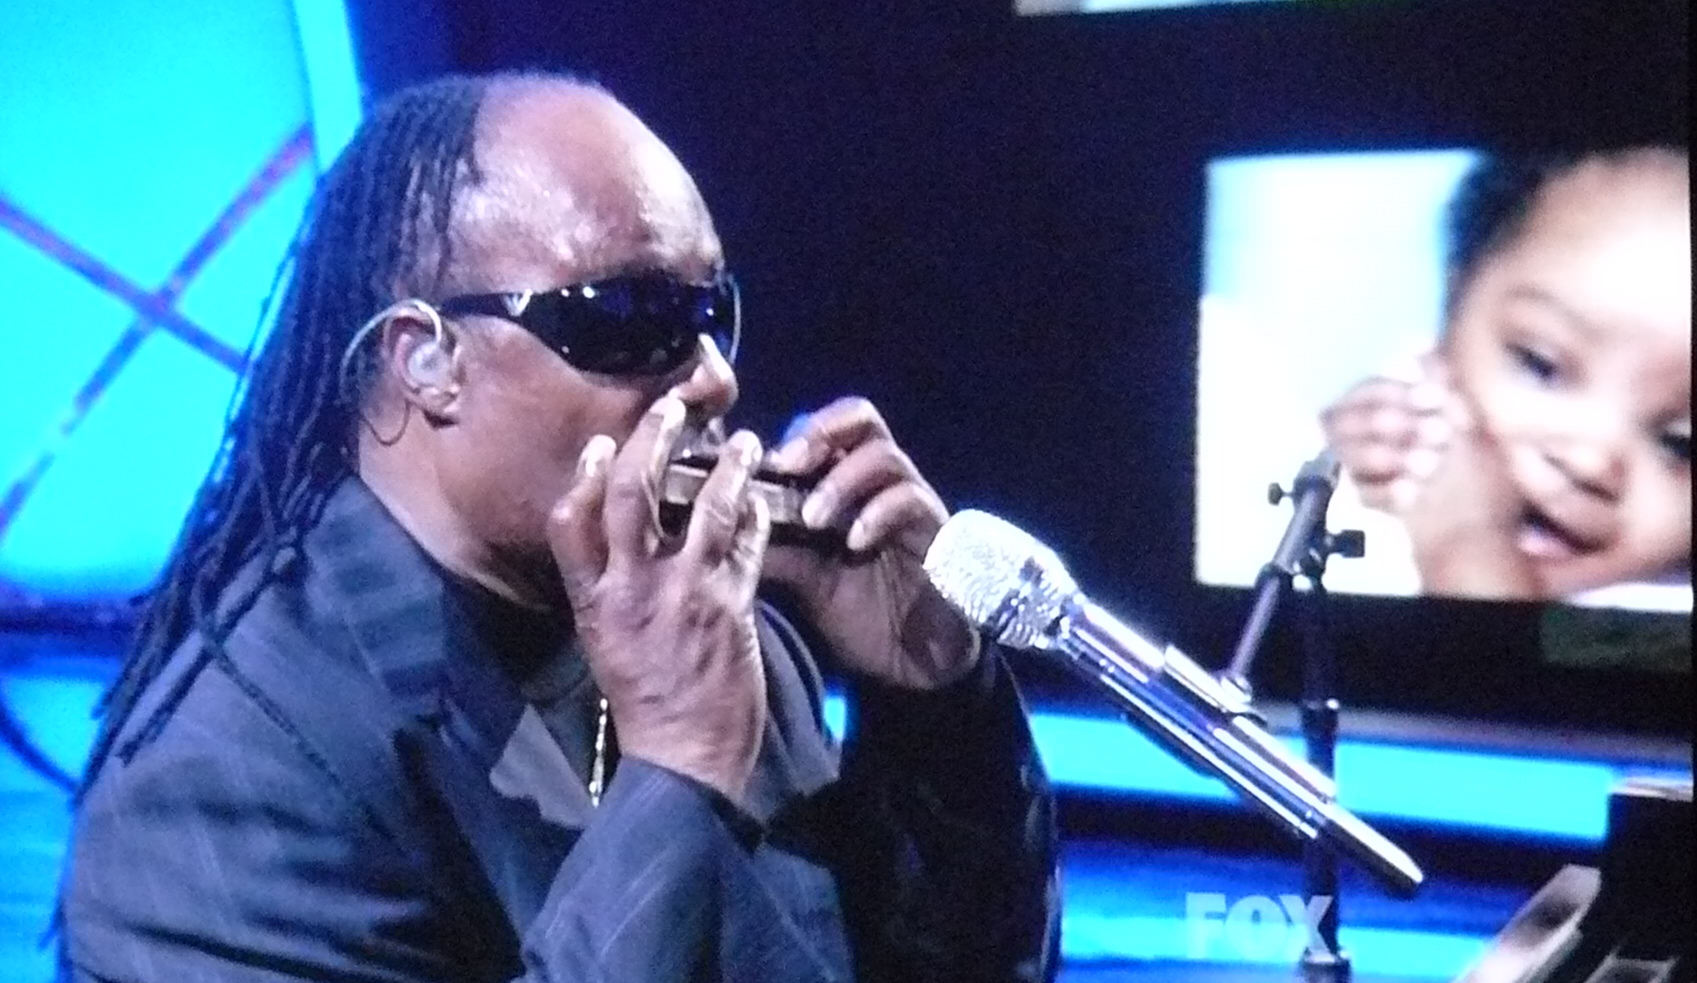 stevie wonder with harmonica